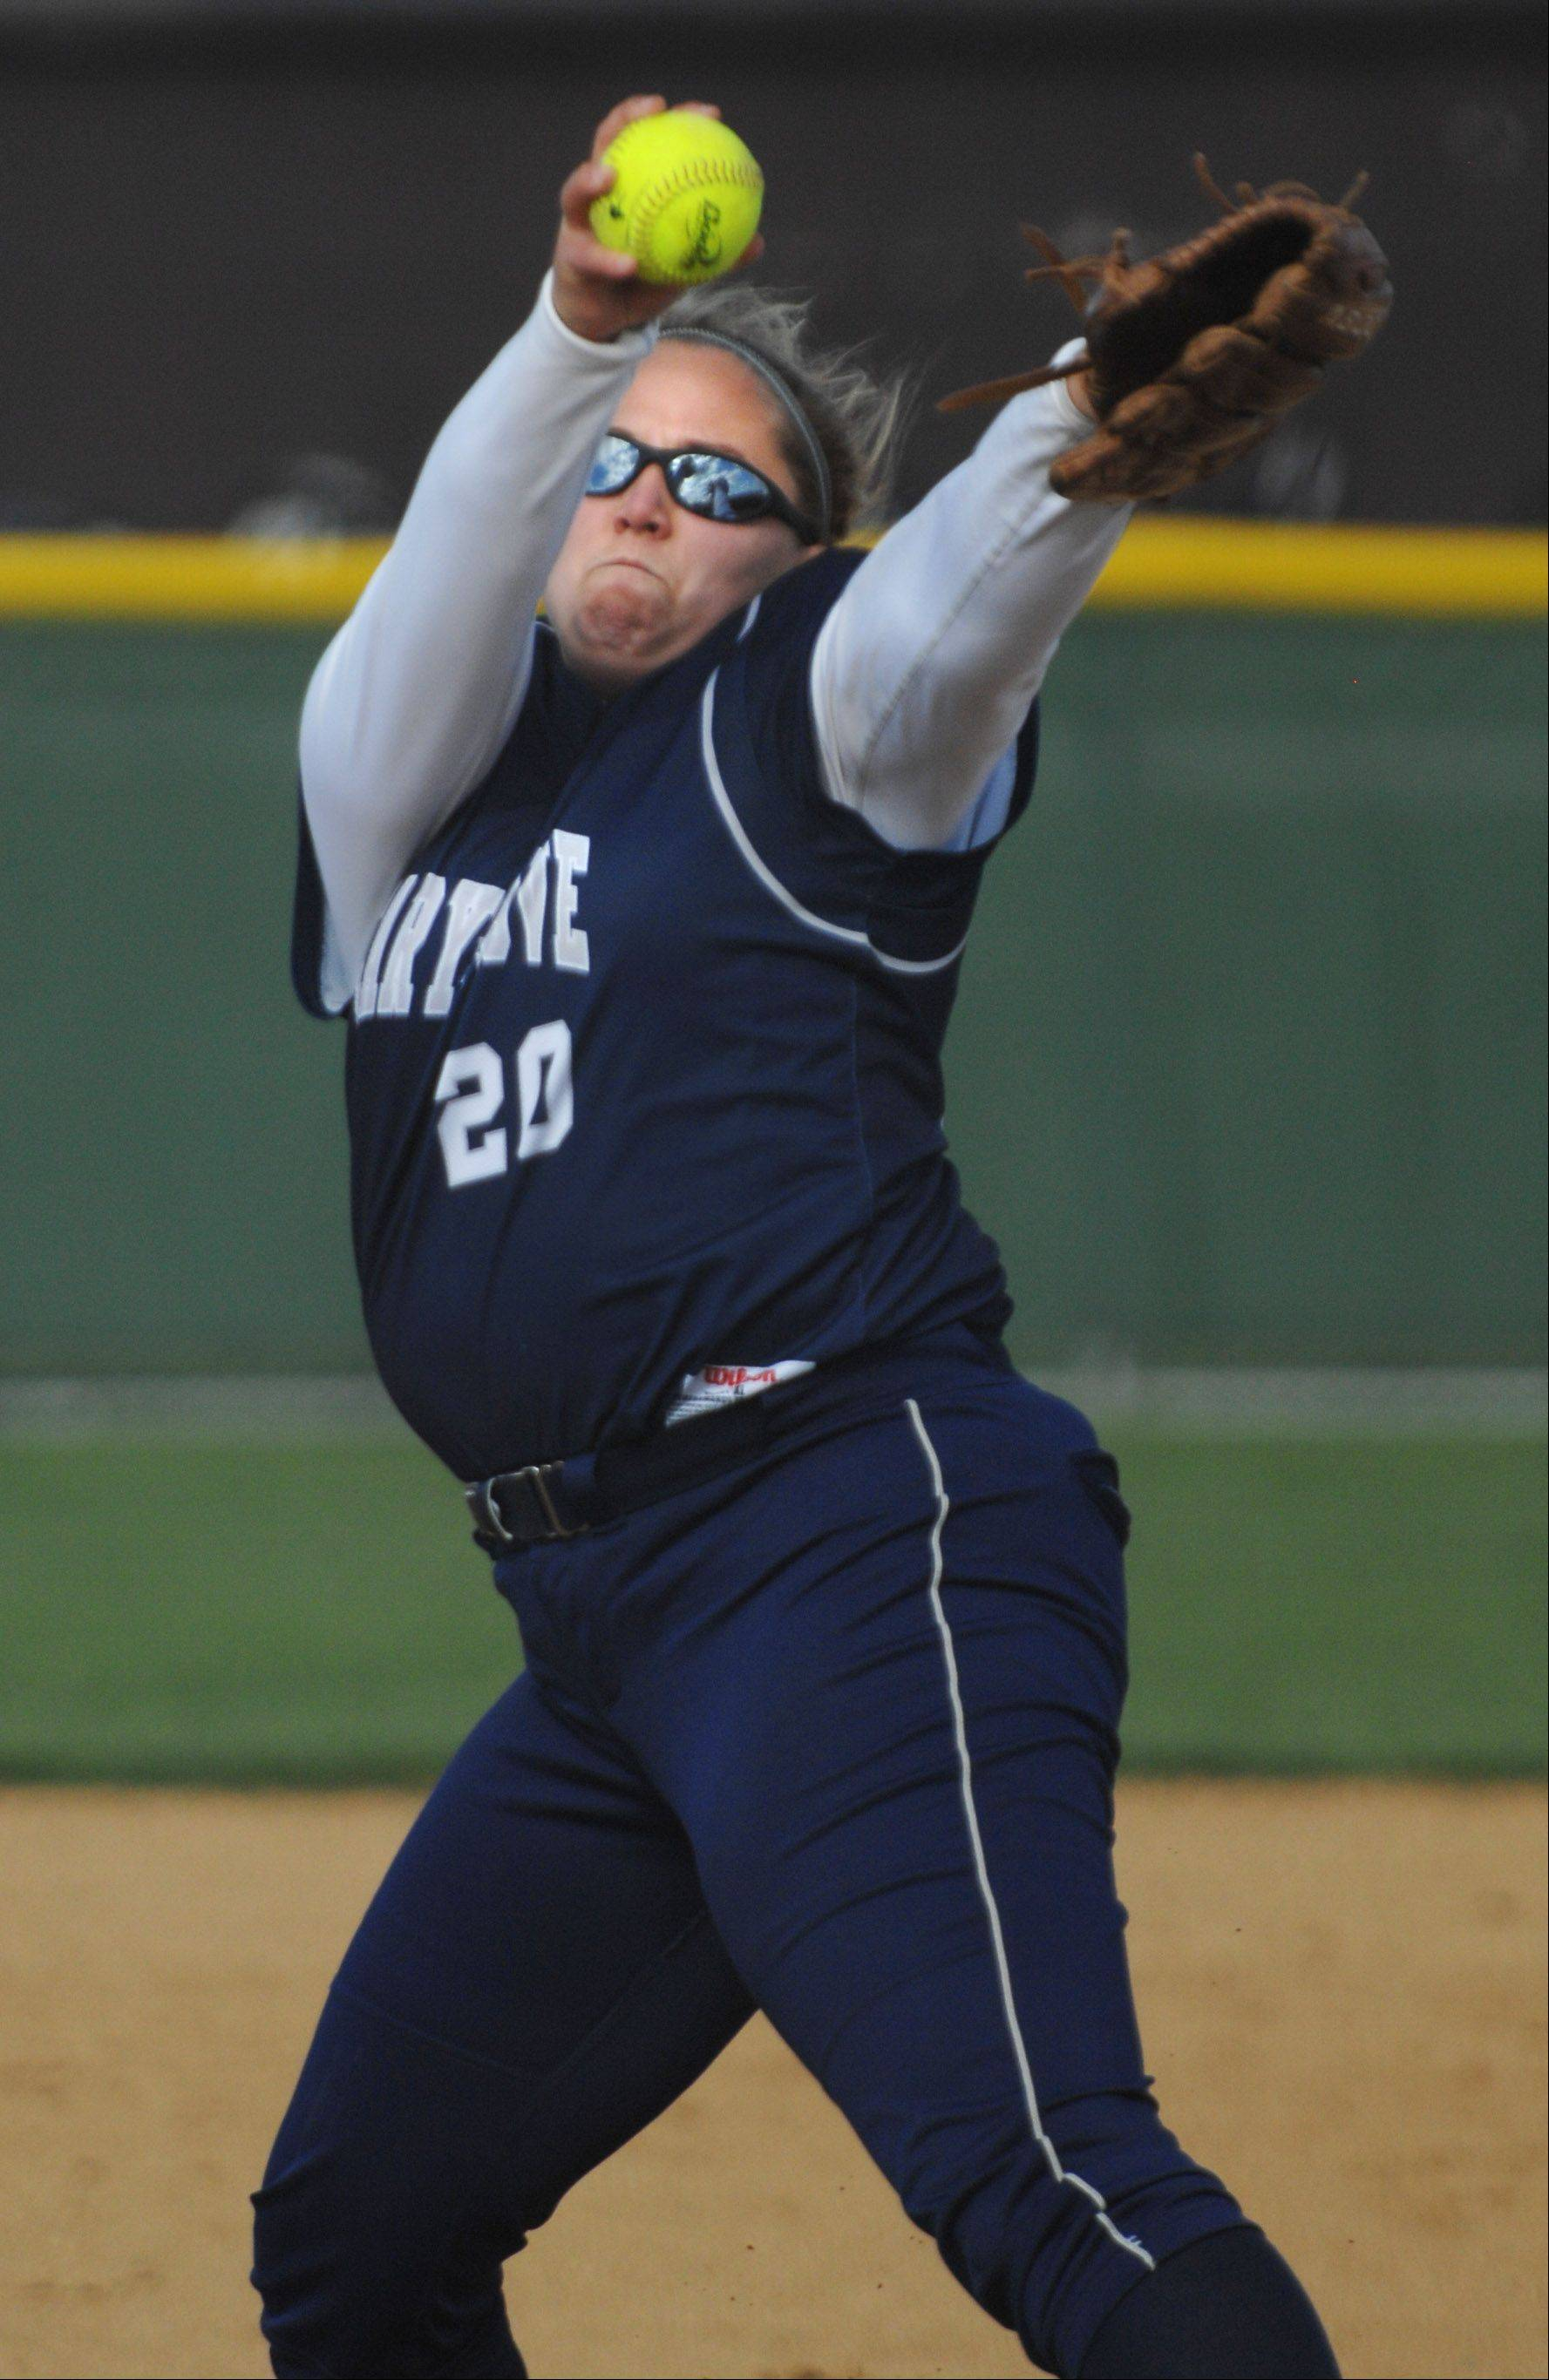 Cary-Grove senior Lindsay Efflandt will take her softball and academic talents to Yale University next year.